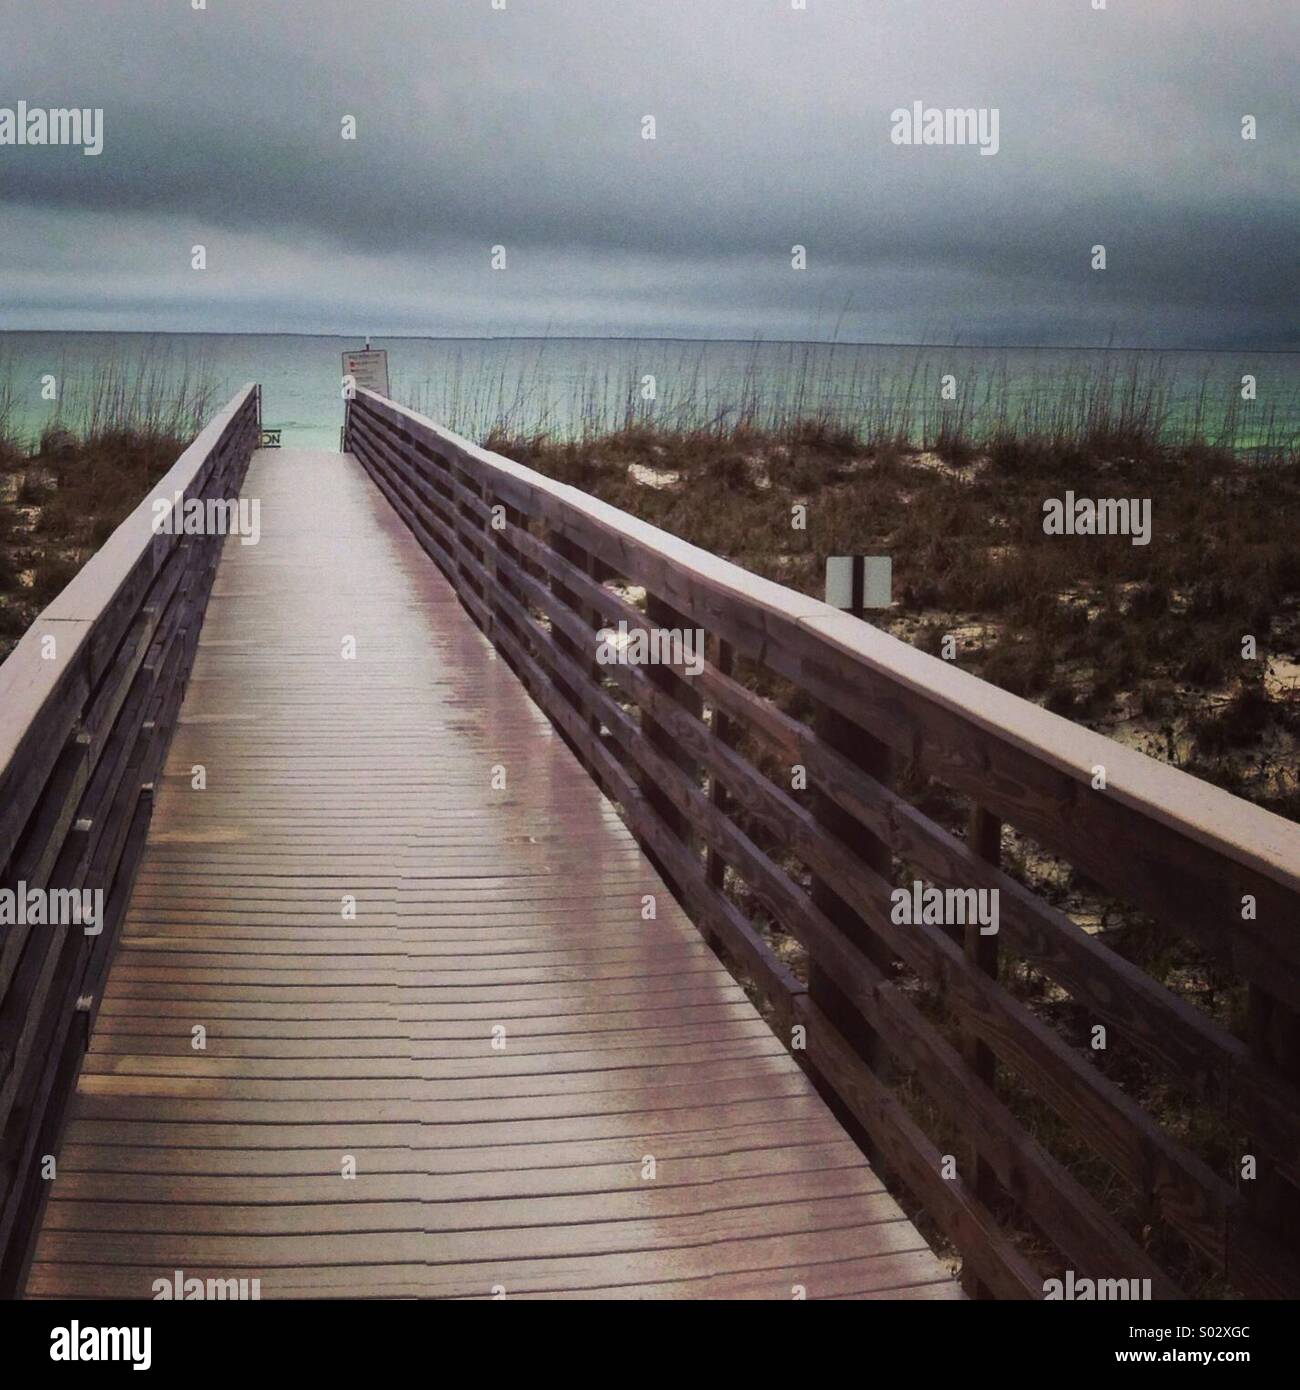 Wet beach walkway and stormy sky. - Stock Image